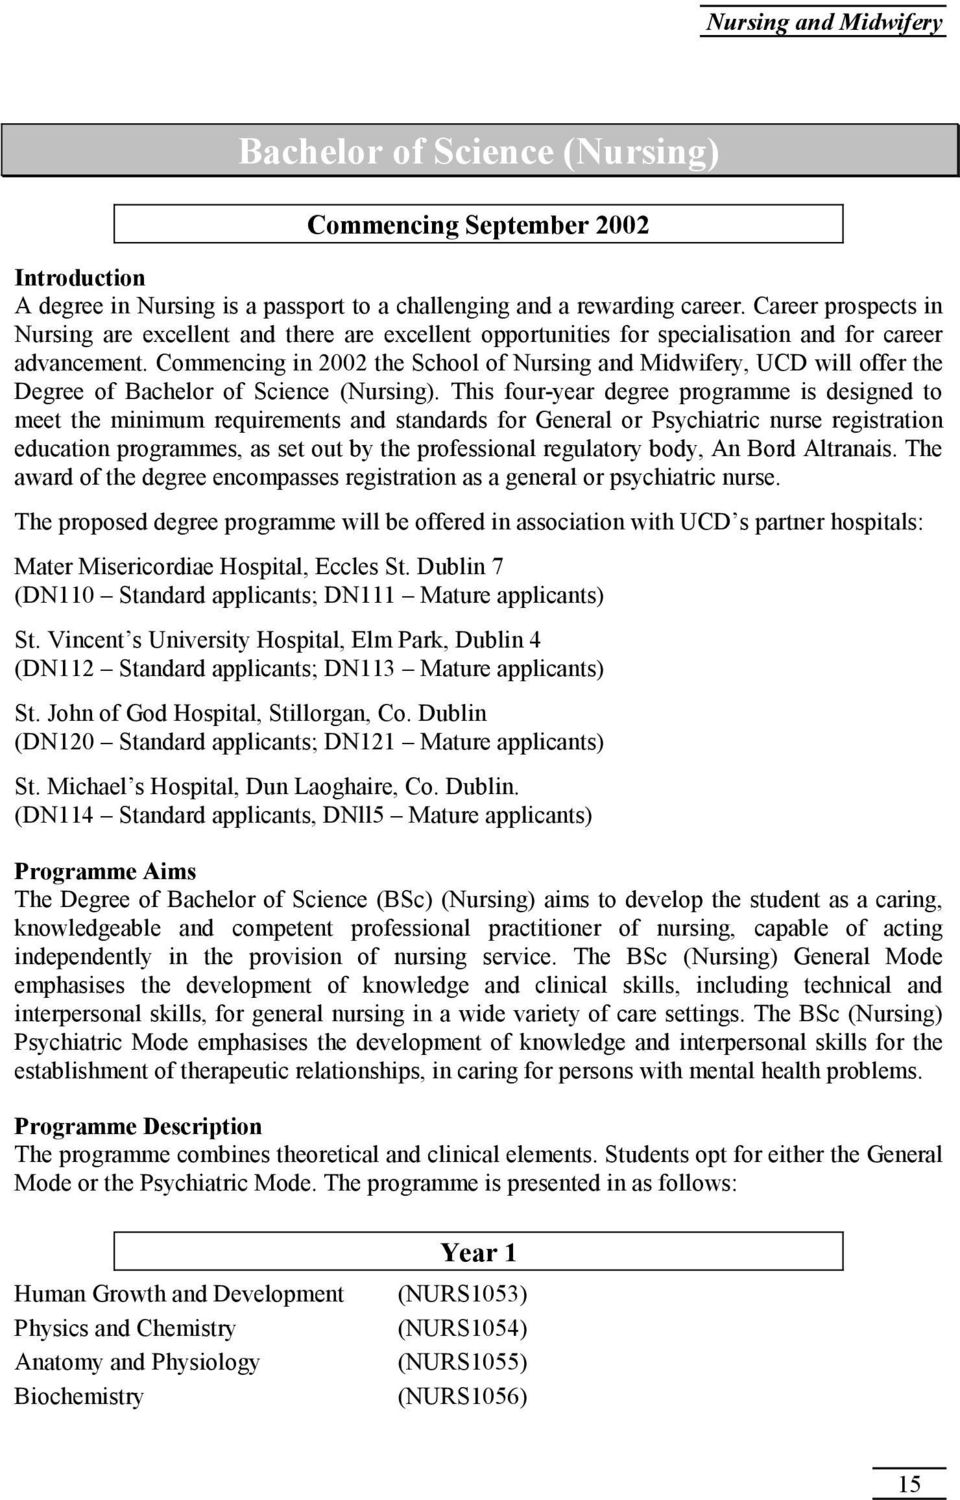 Commencing in 2002 the School of Nursing and Midwifery, UCD will offer the Degree of Bachelor of Science (Nursing).